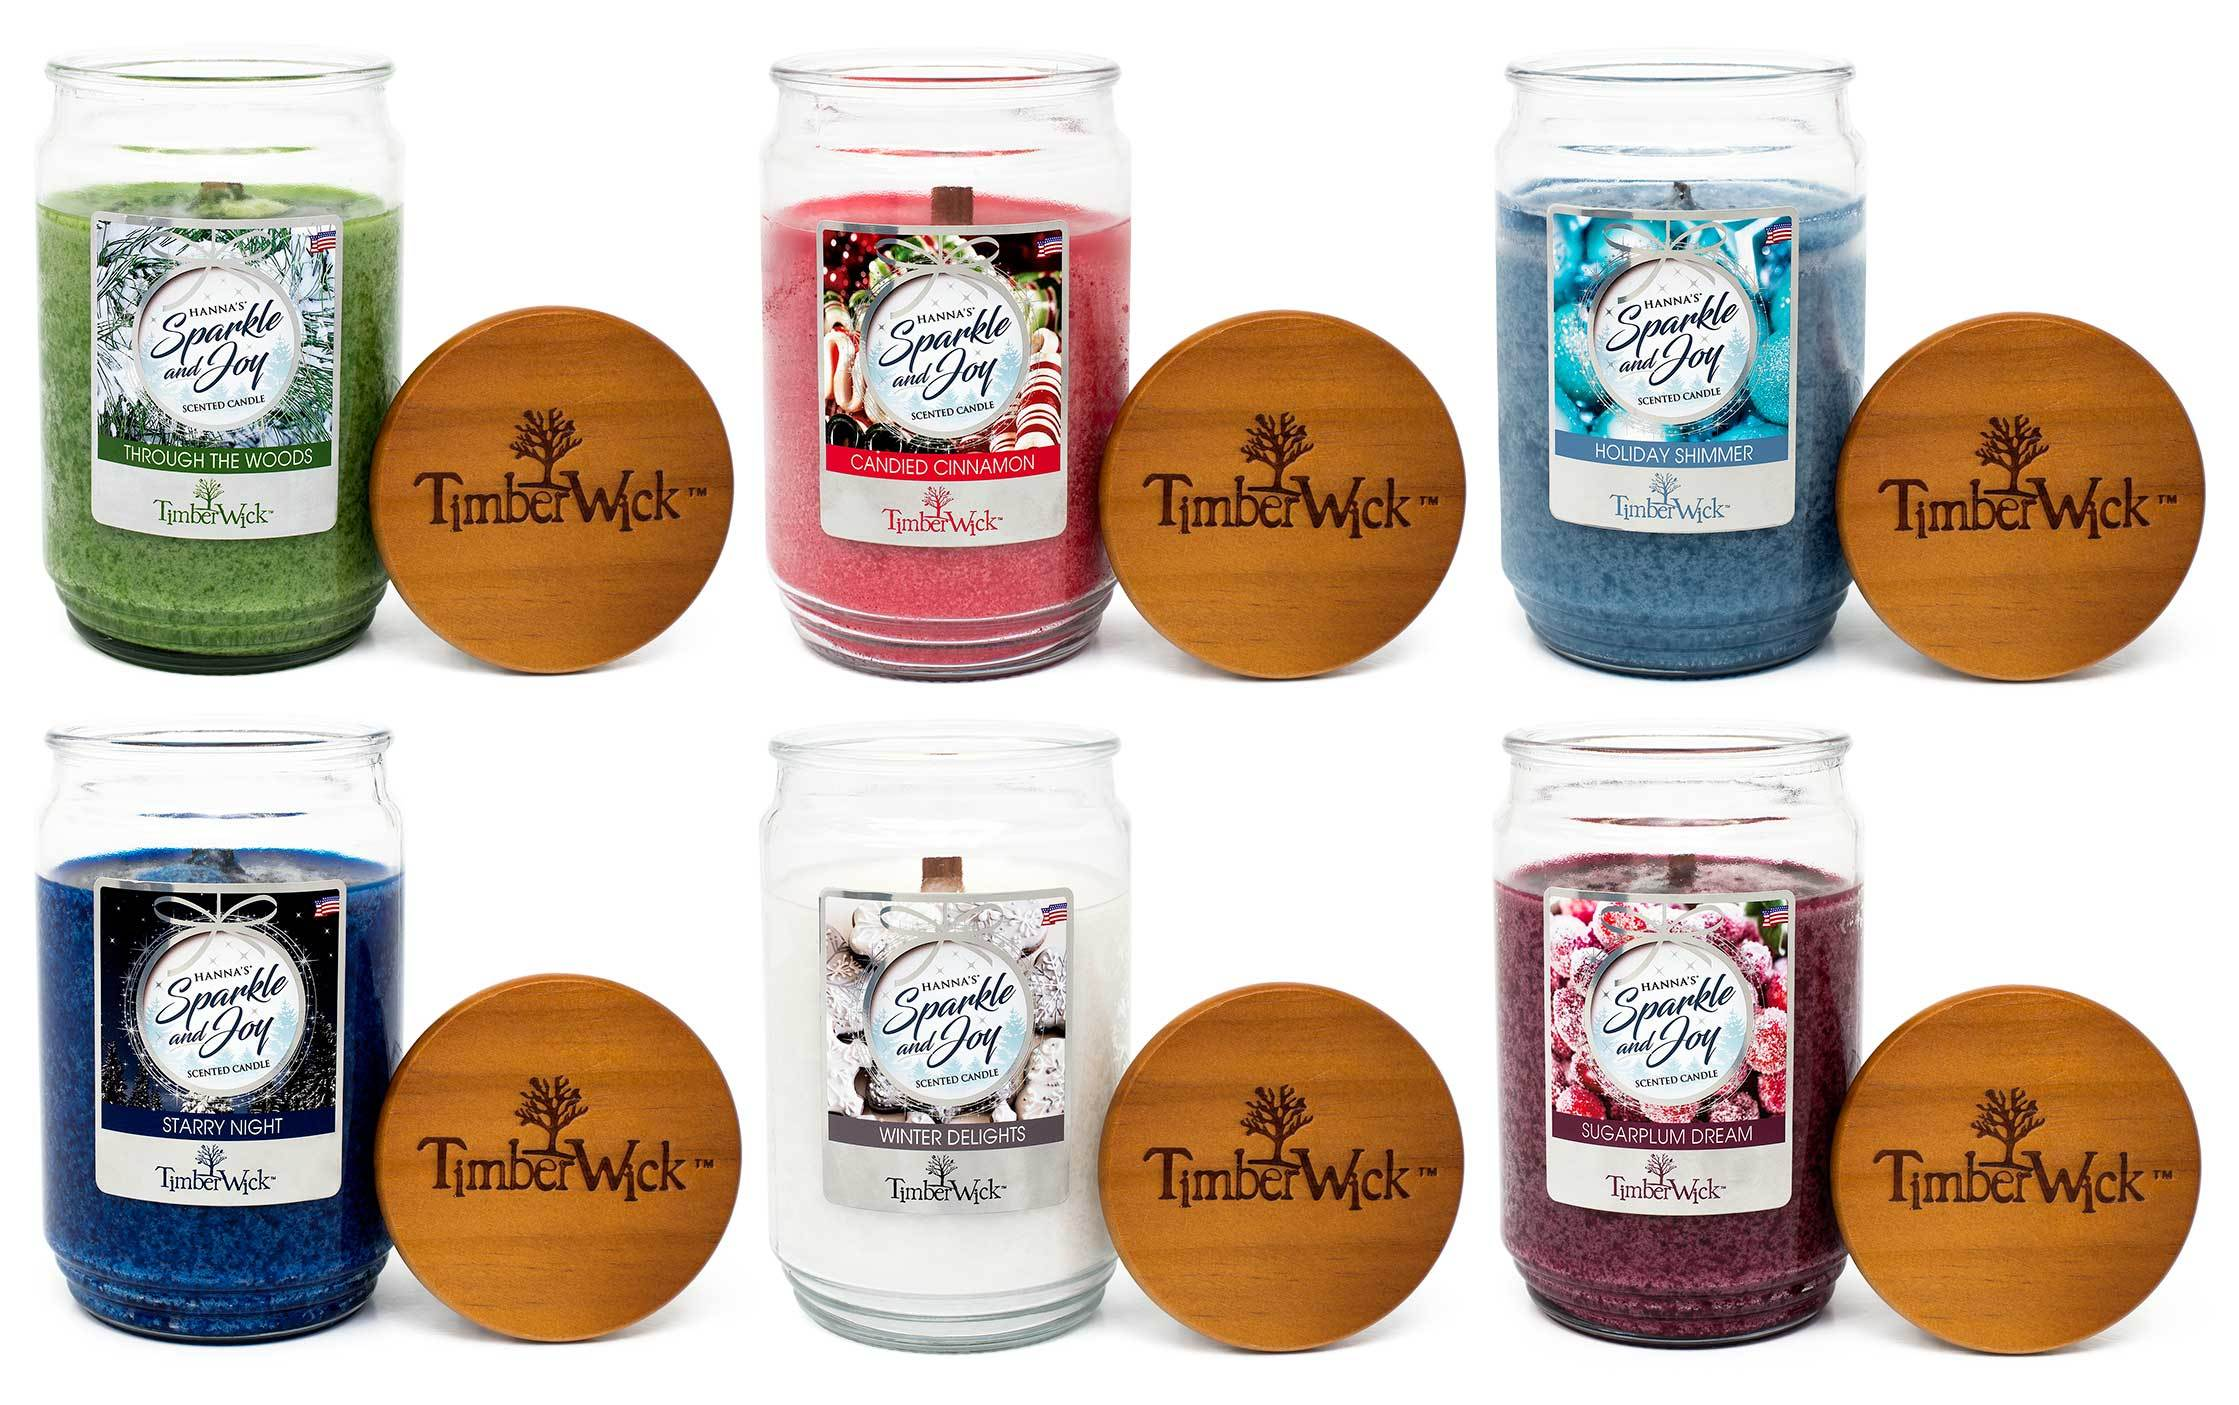 TimberWick Candied Cinnamon Mottled Scented Wax Candle Timberwick Candlemart.com $ 7.50